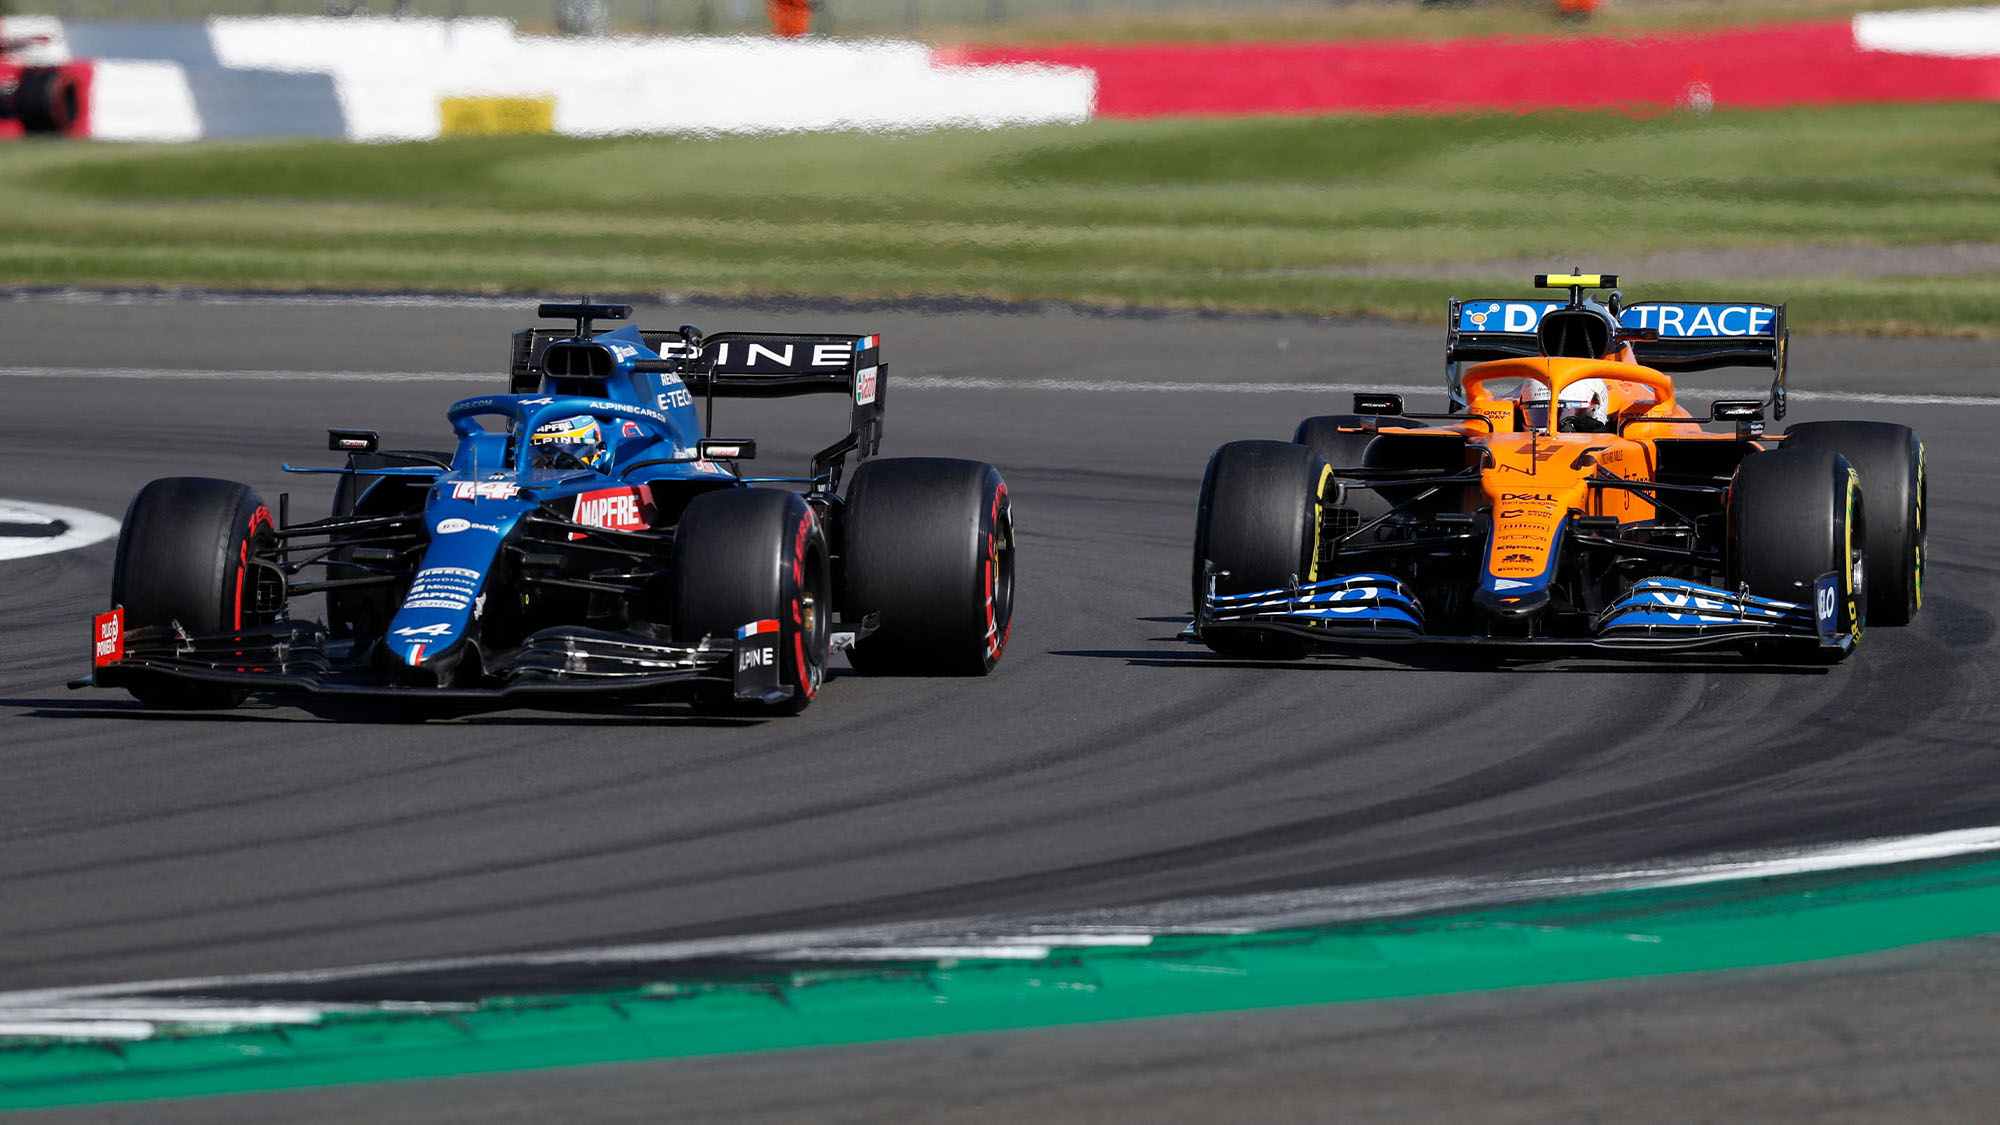 alonso norris during the 2021 British Grand Prix sprint qualifying